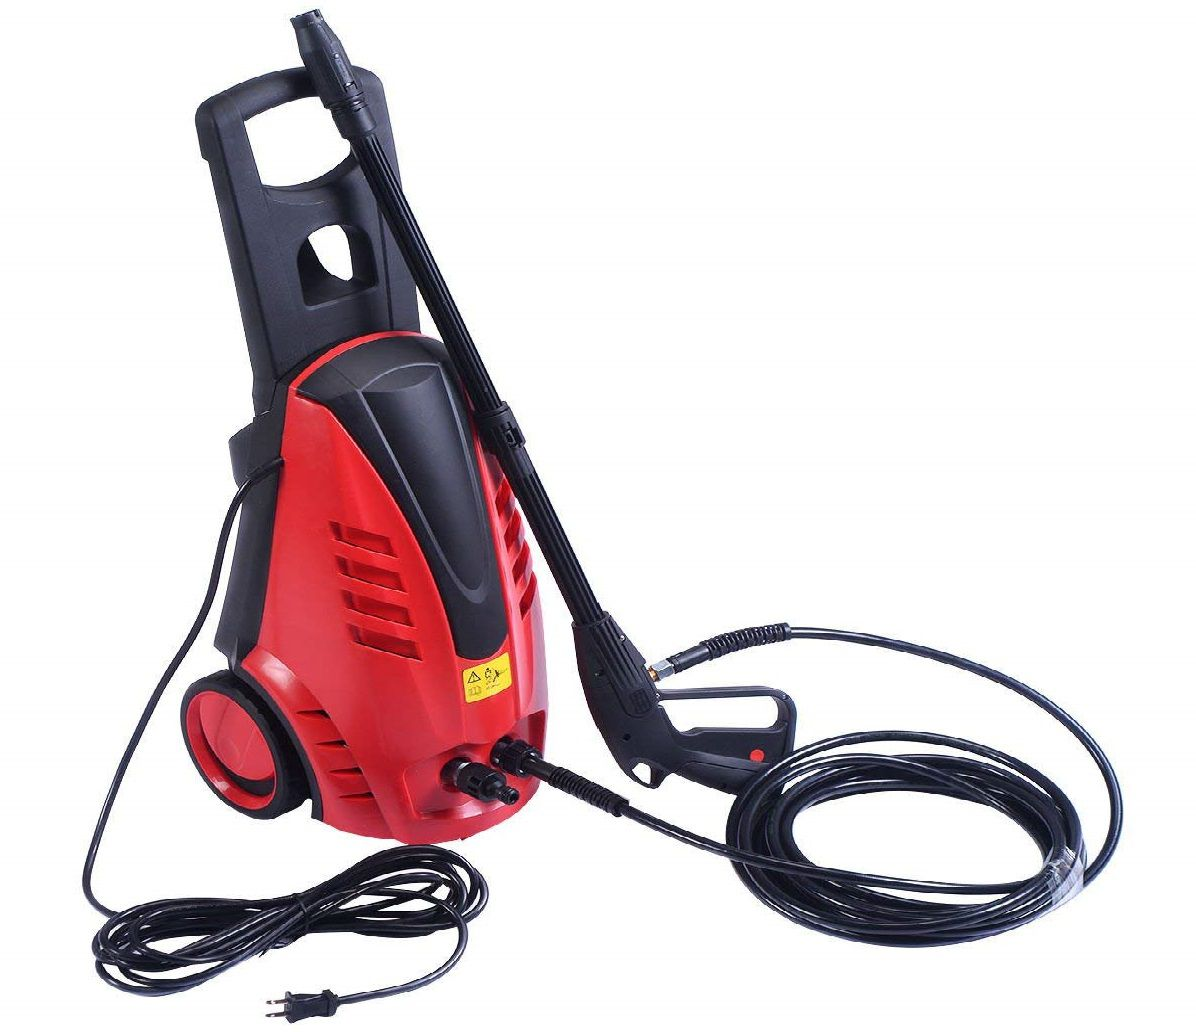 Goplus Electric Pressure Washer